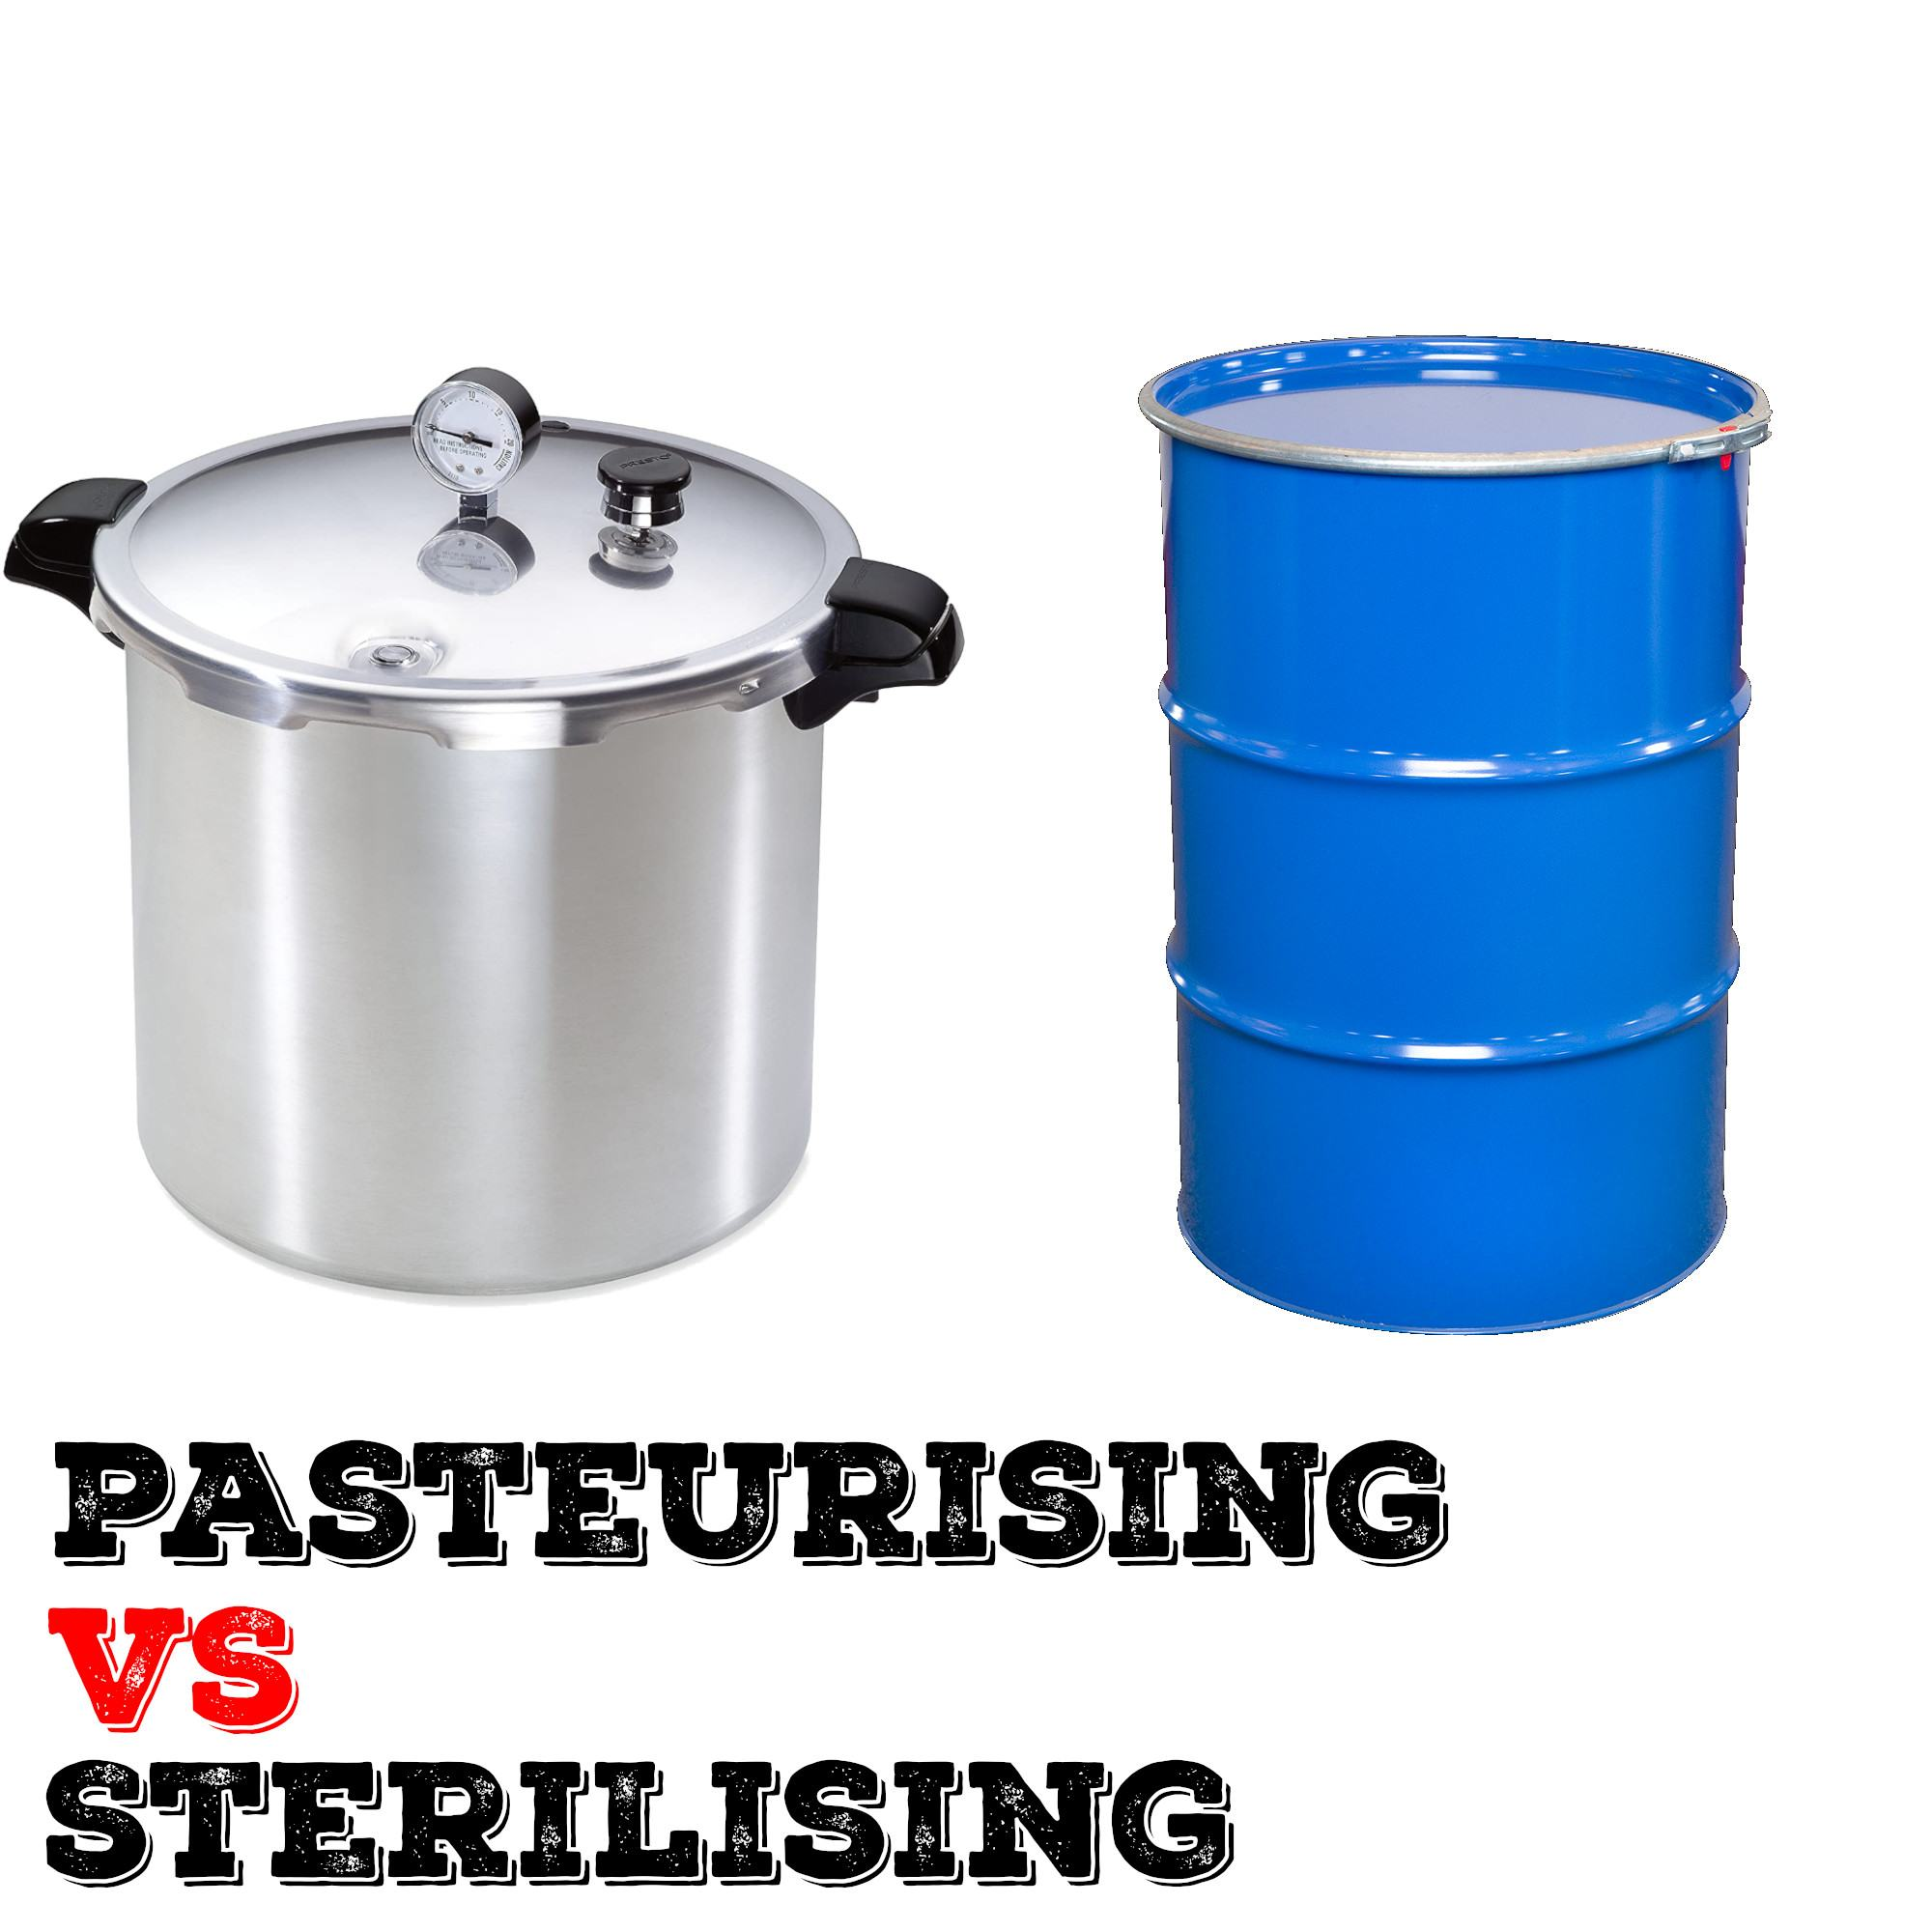 Pasteurising Vs Sterilising When Mushroom Growing | Mushroom Blogs | Mushroom Growing | Mushroom Tips | Mushroom Business